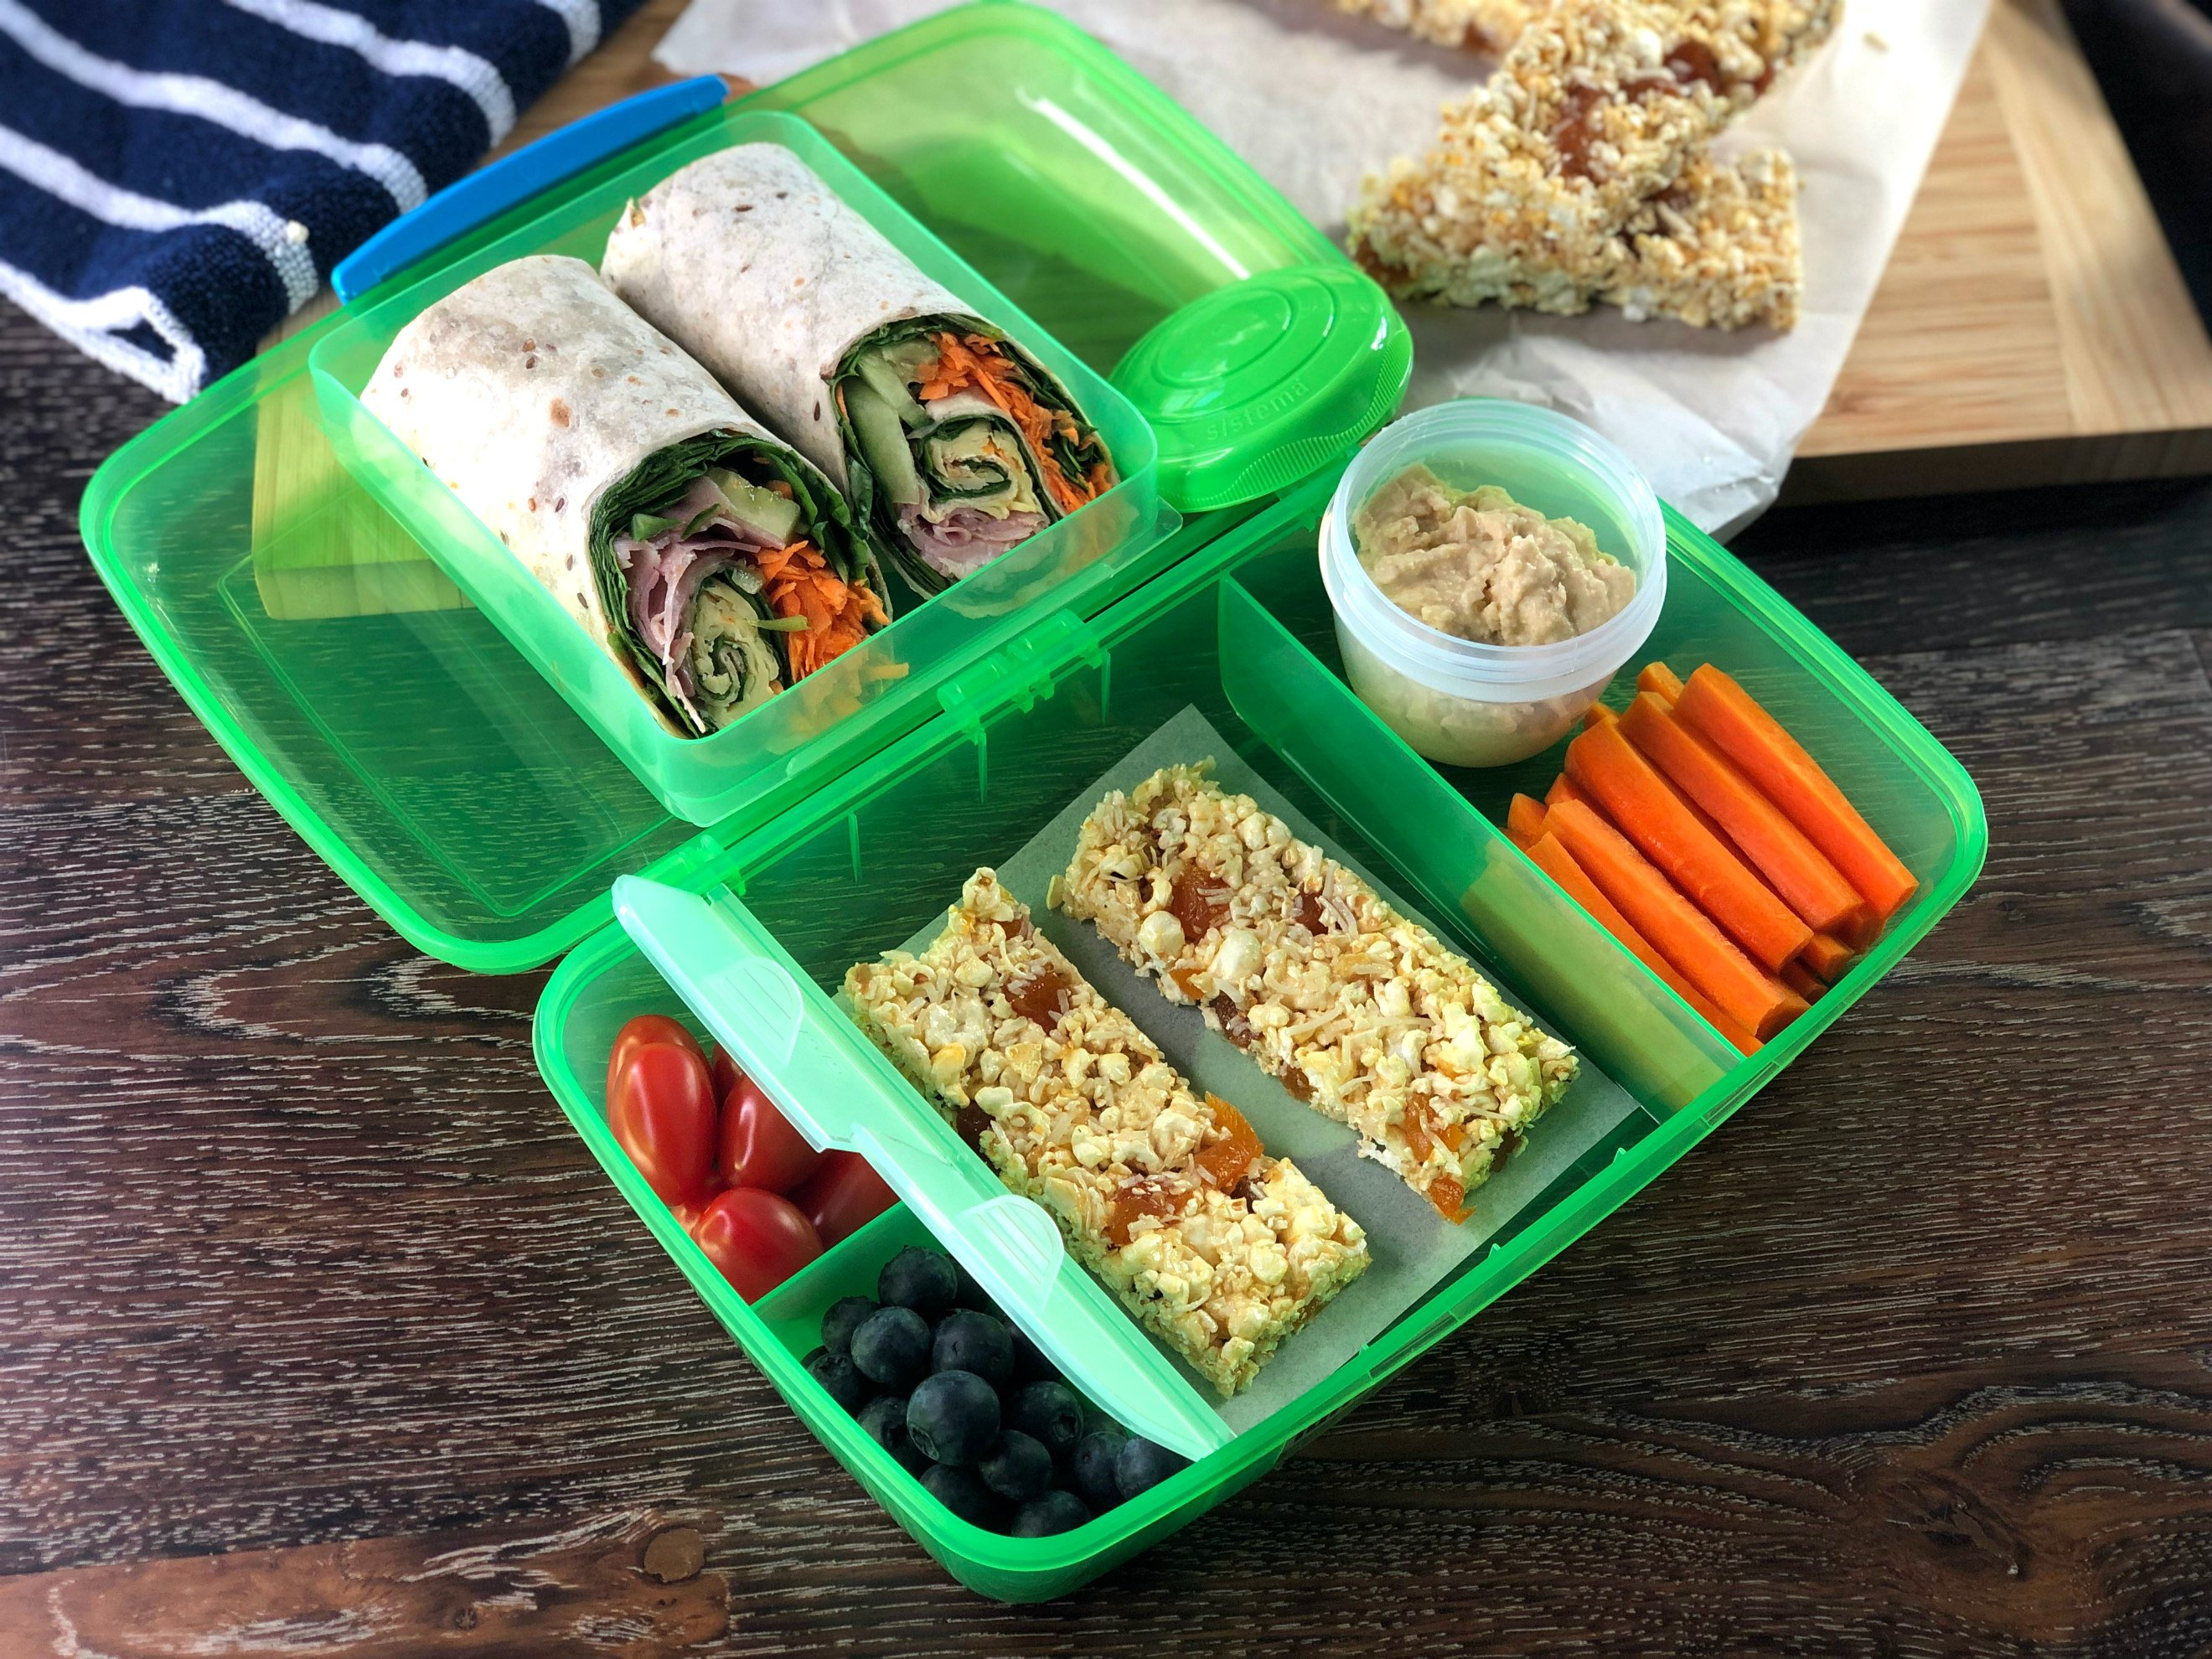 Just A Mum's Lunch Box, plastic free, nut free with Healthy Fillings, wrap, popcorn bars, vegetables and fruit